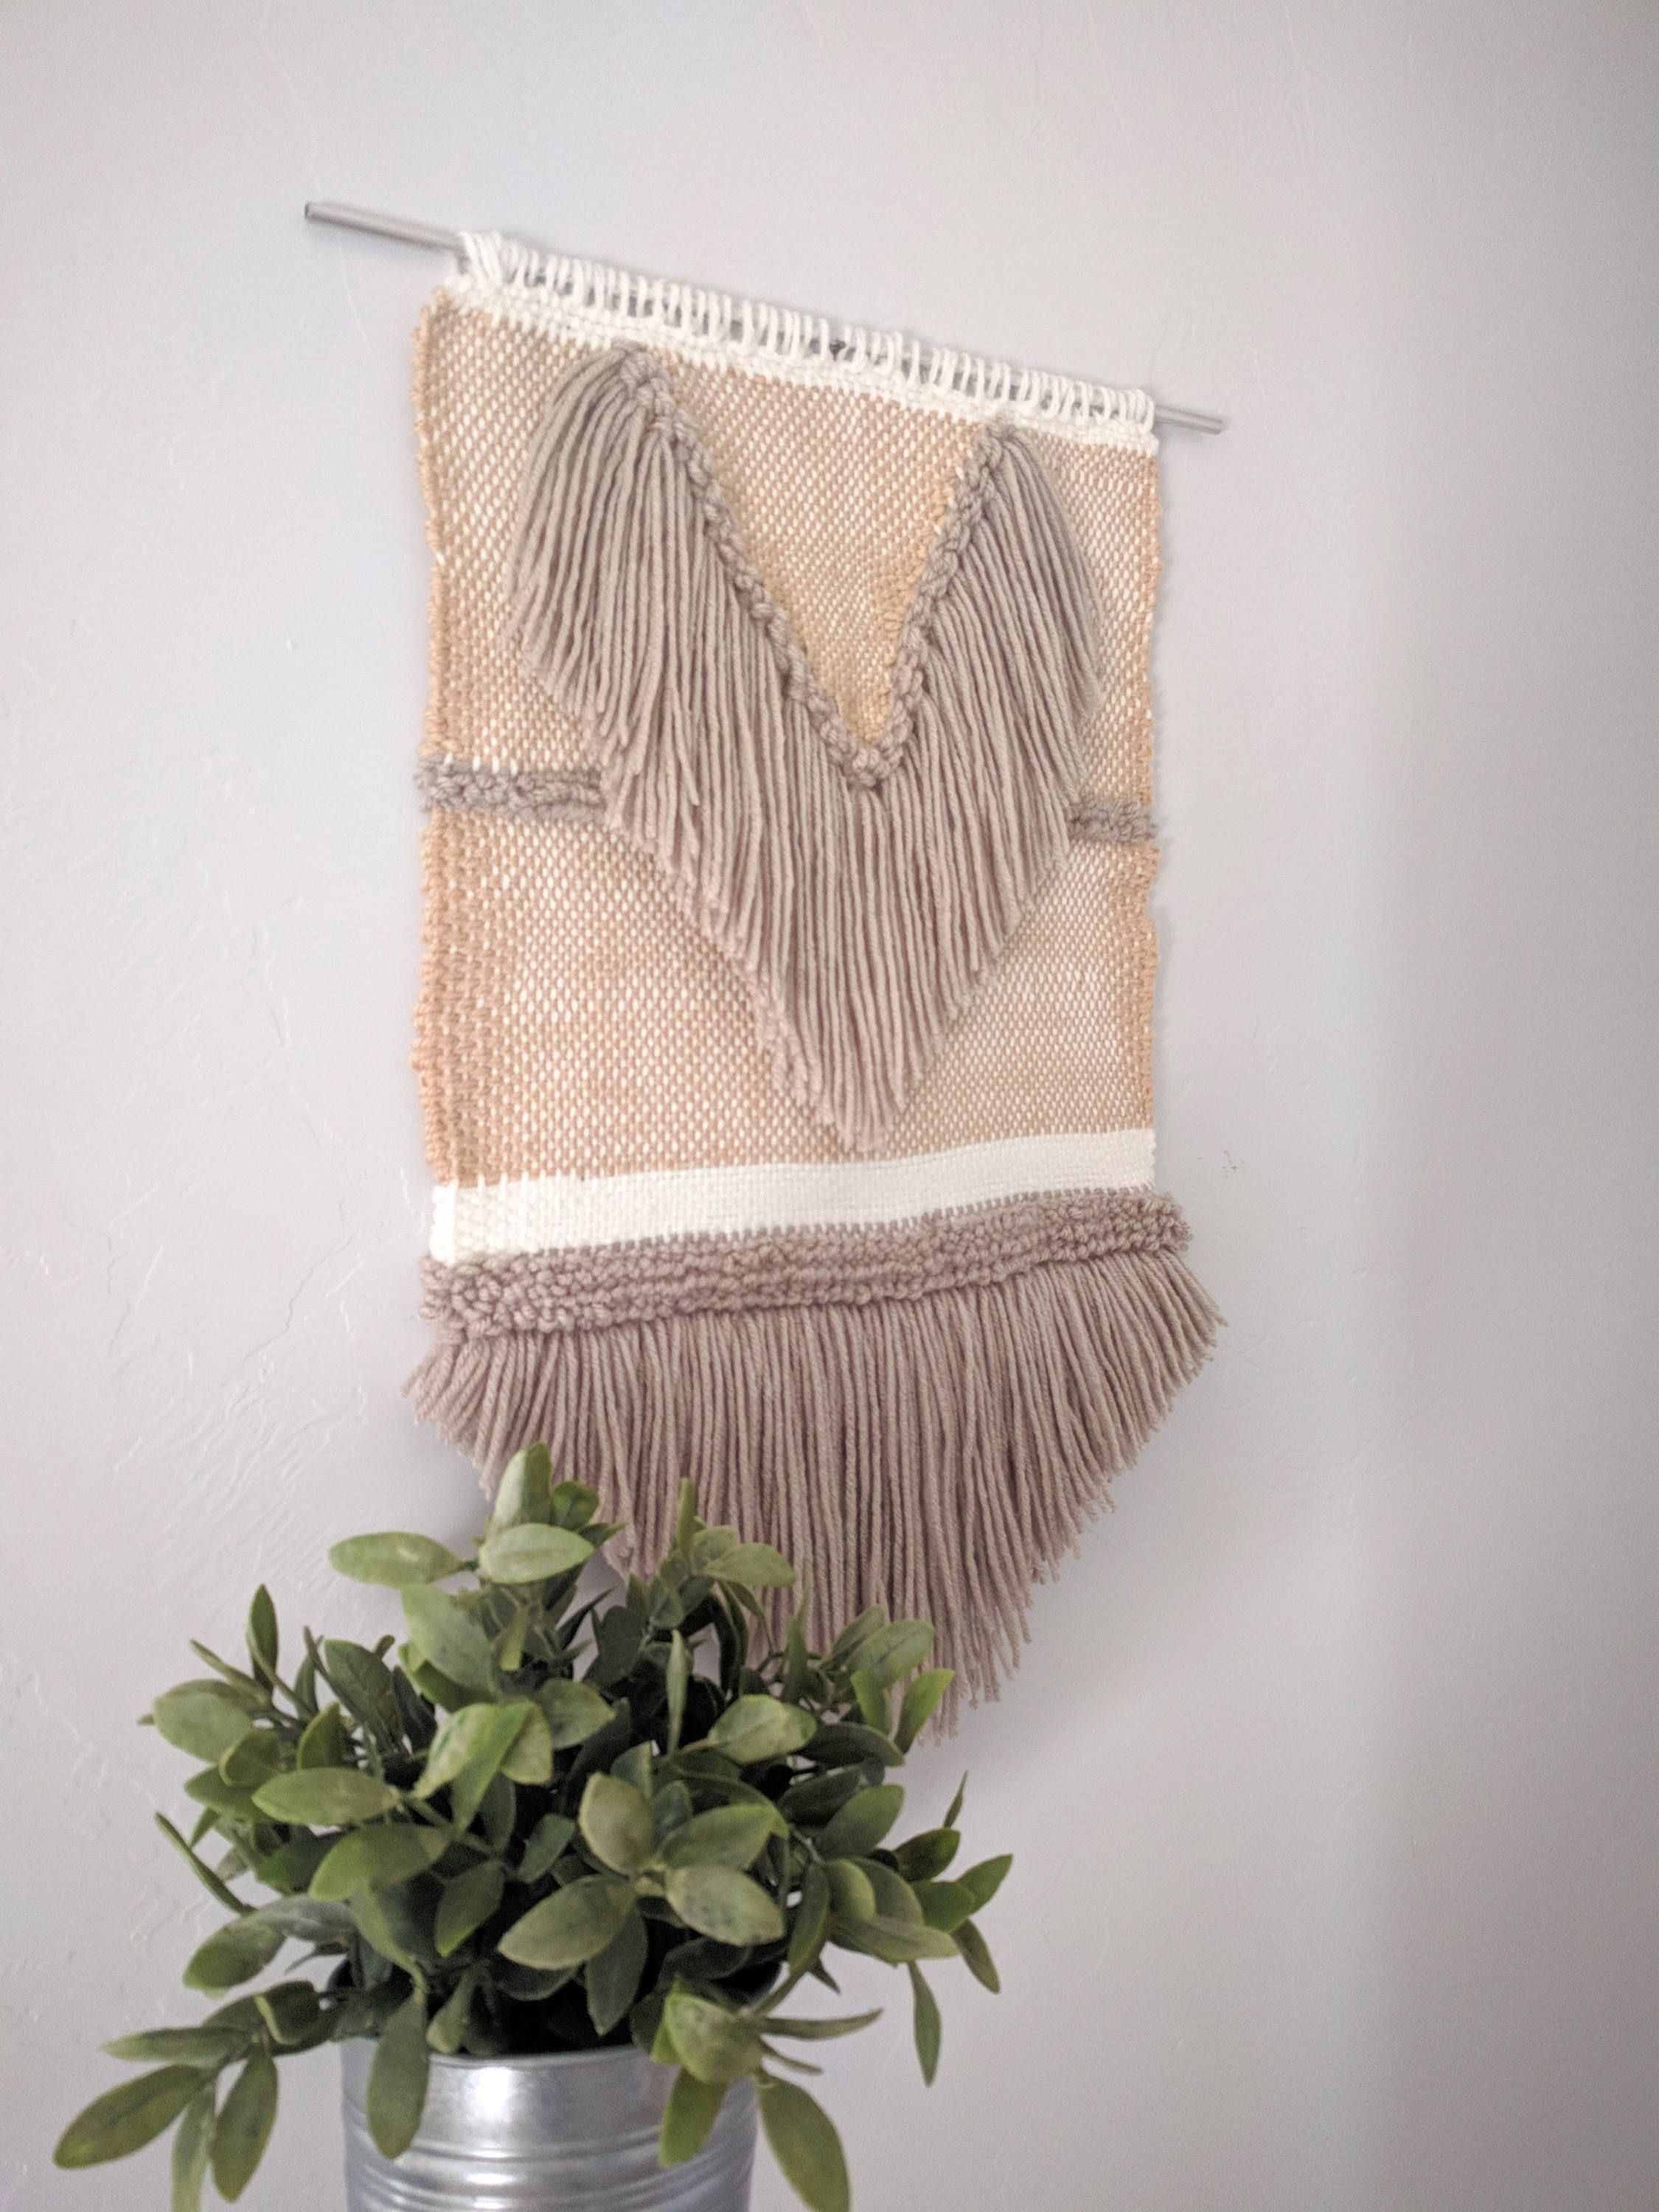 Medium Woven Wall Hanging,Wall Tapestry, Nursery Decor,Fiber Art, Scandinavian,